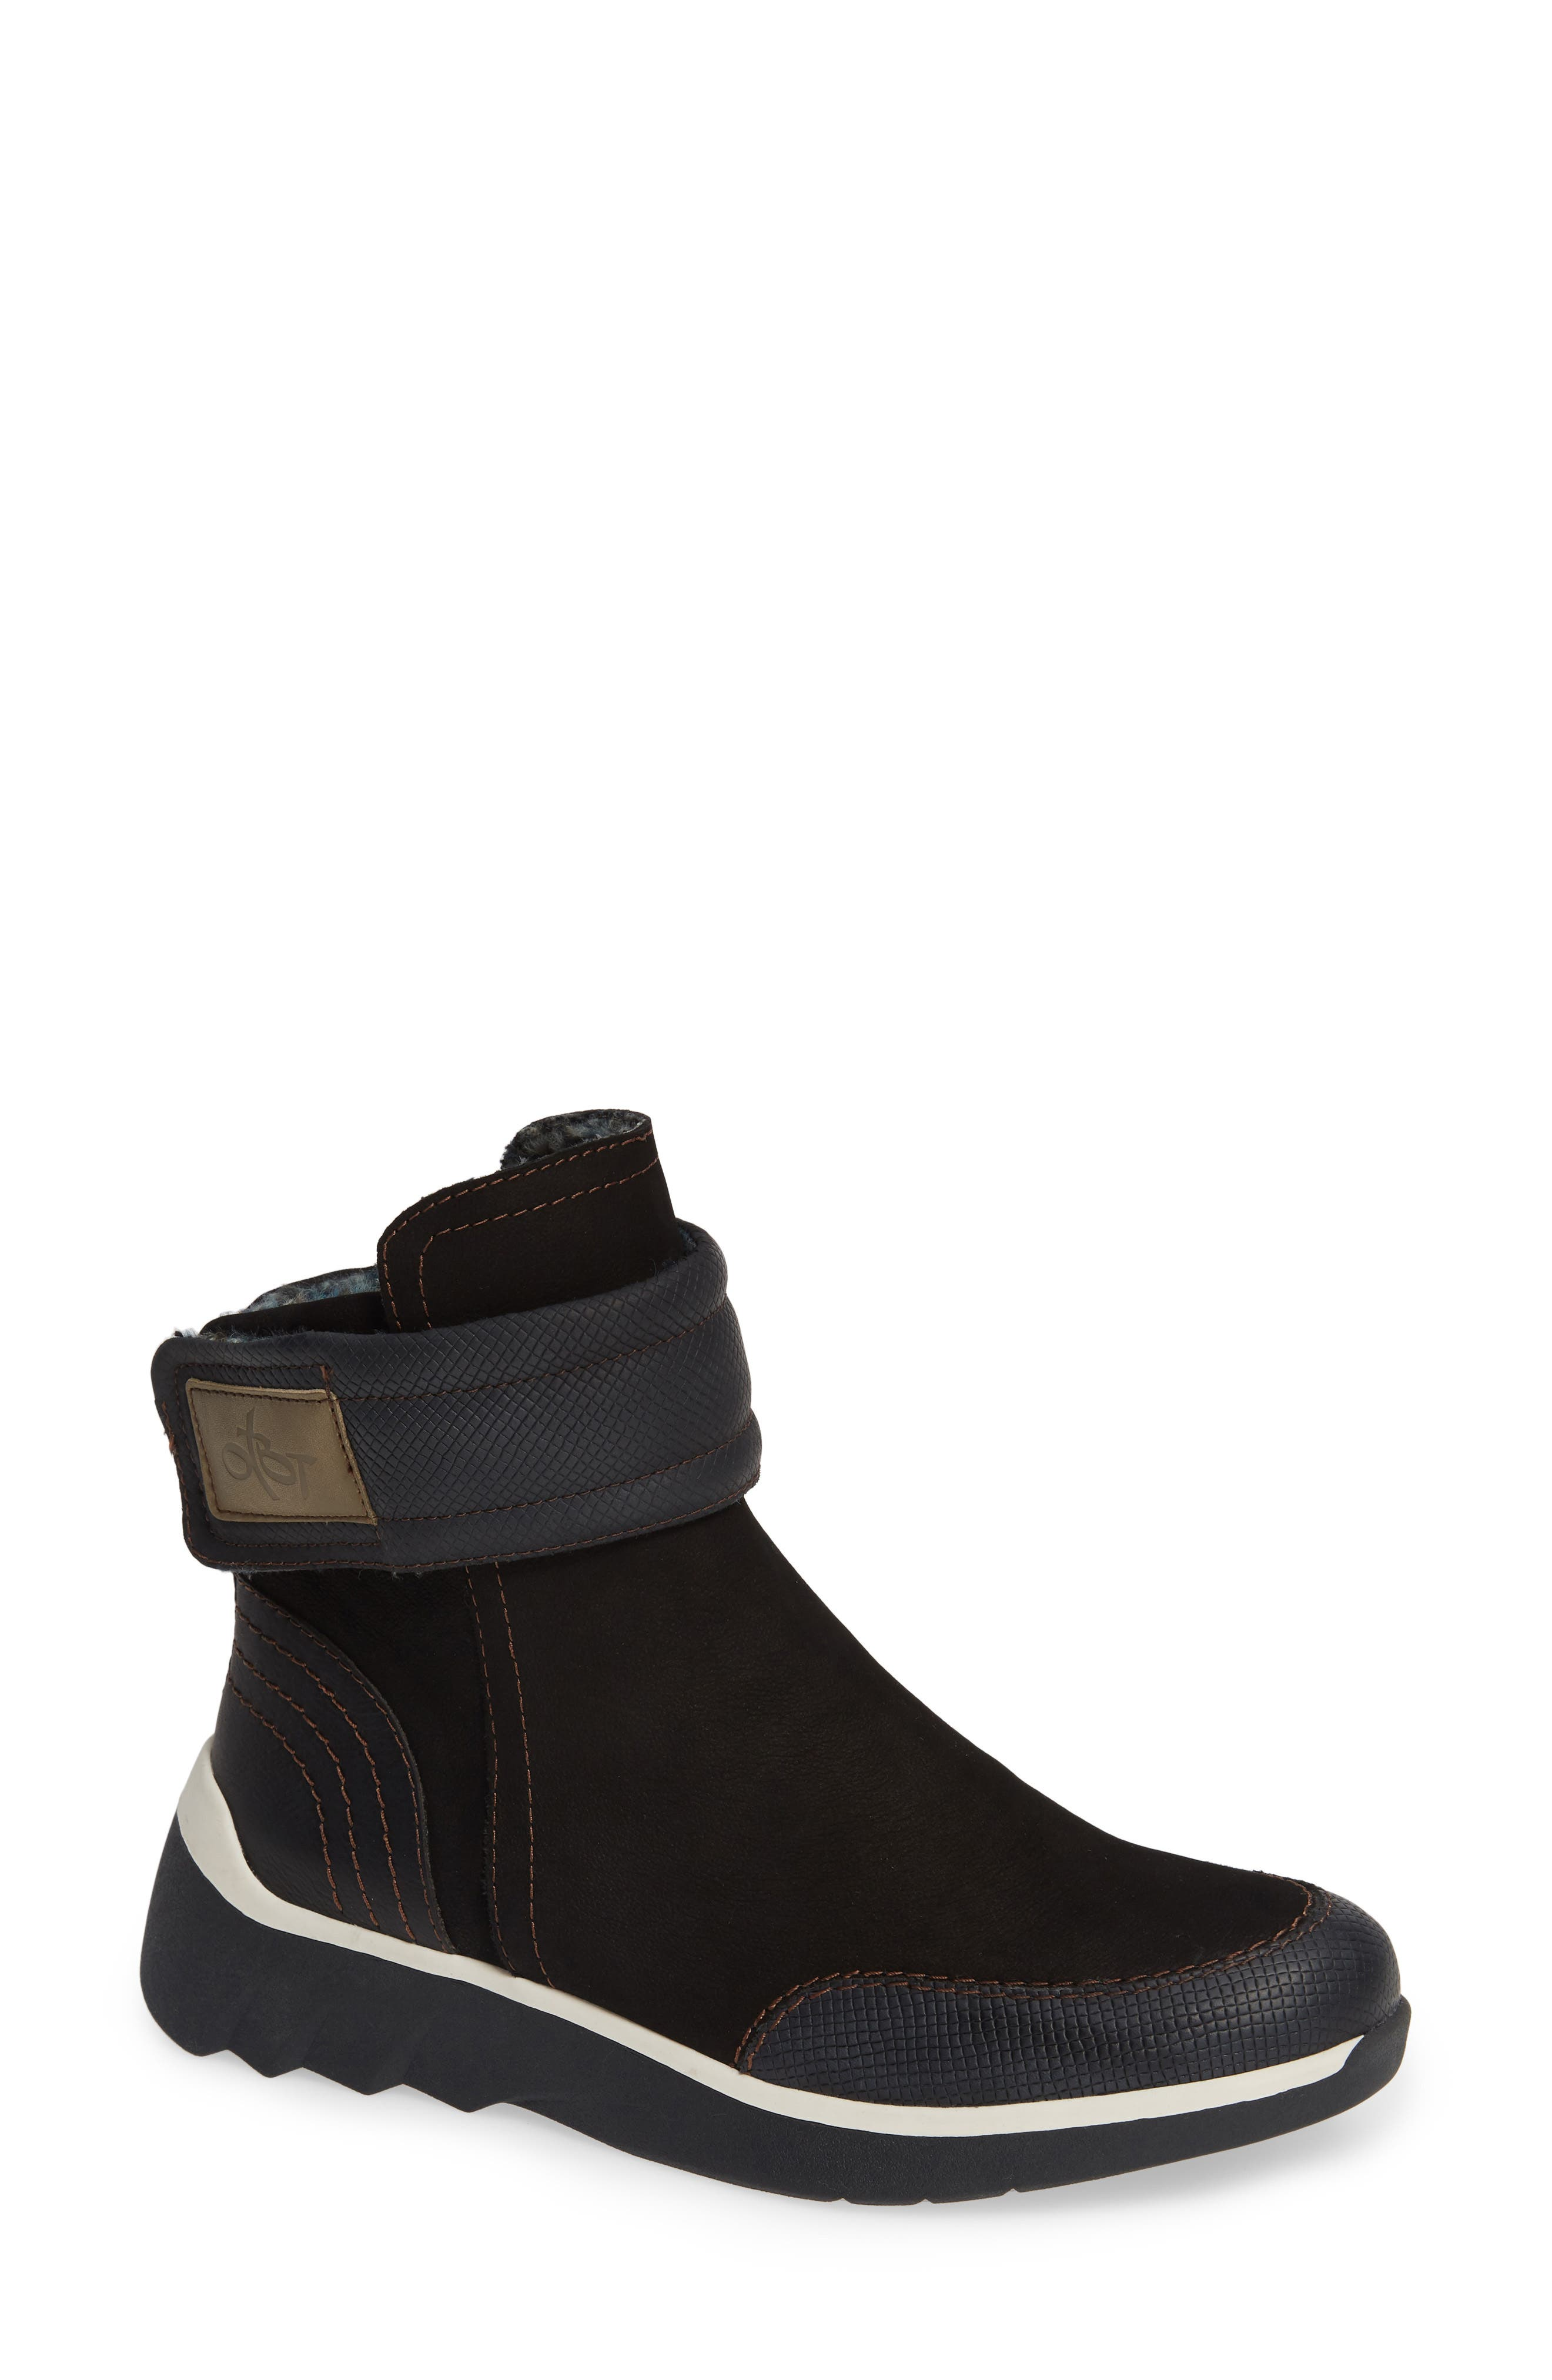 Outing Bootie,                             Main thumbnail 1, color,                             BLACK LEATHER